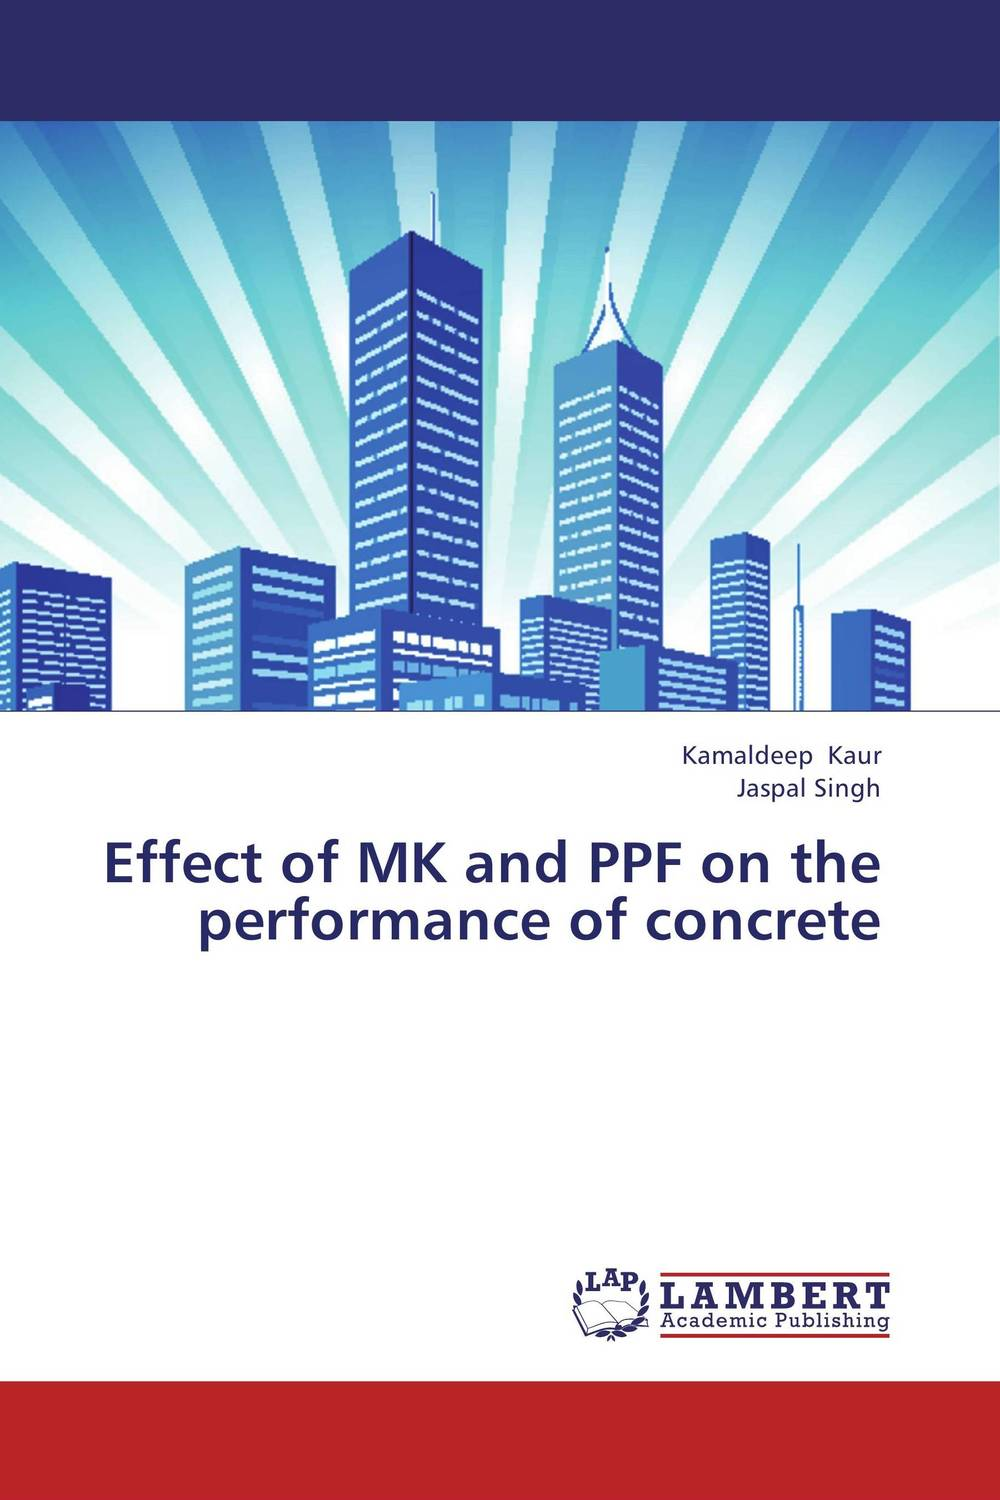 купить Effect of MK and PPF on the performance of concrete недорого